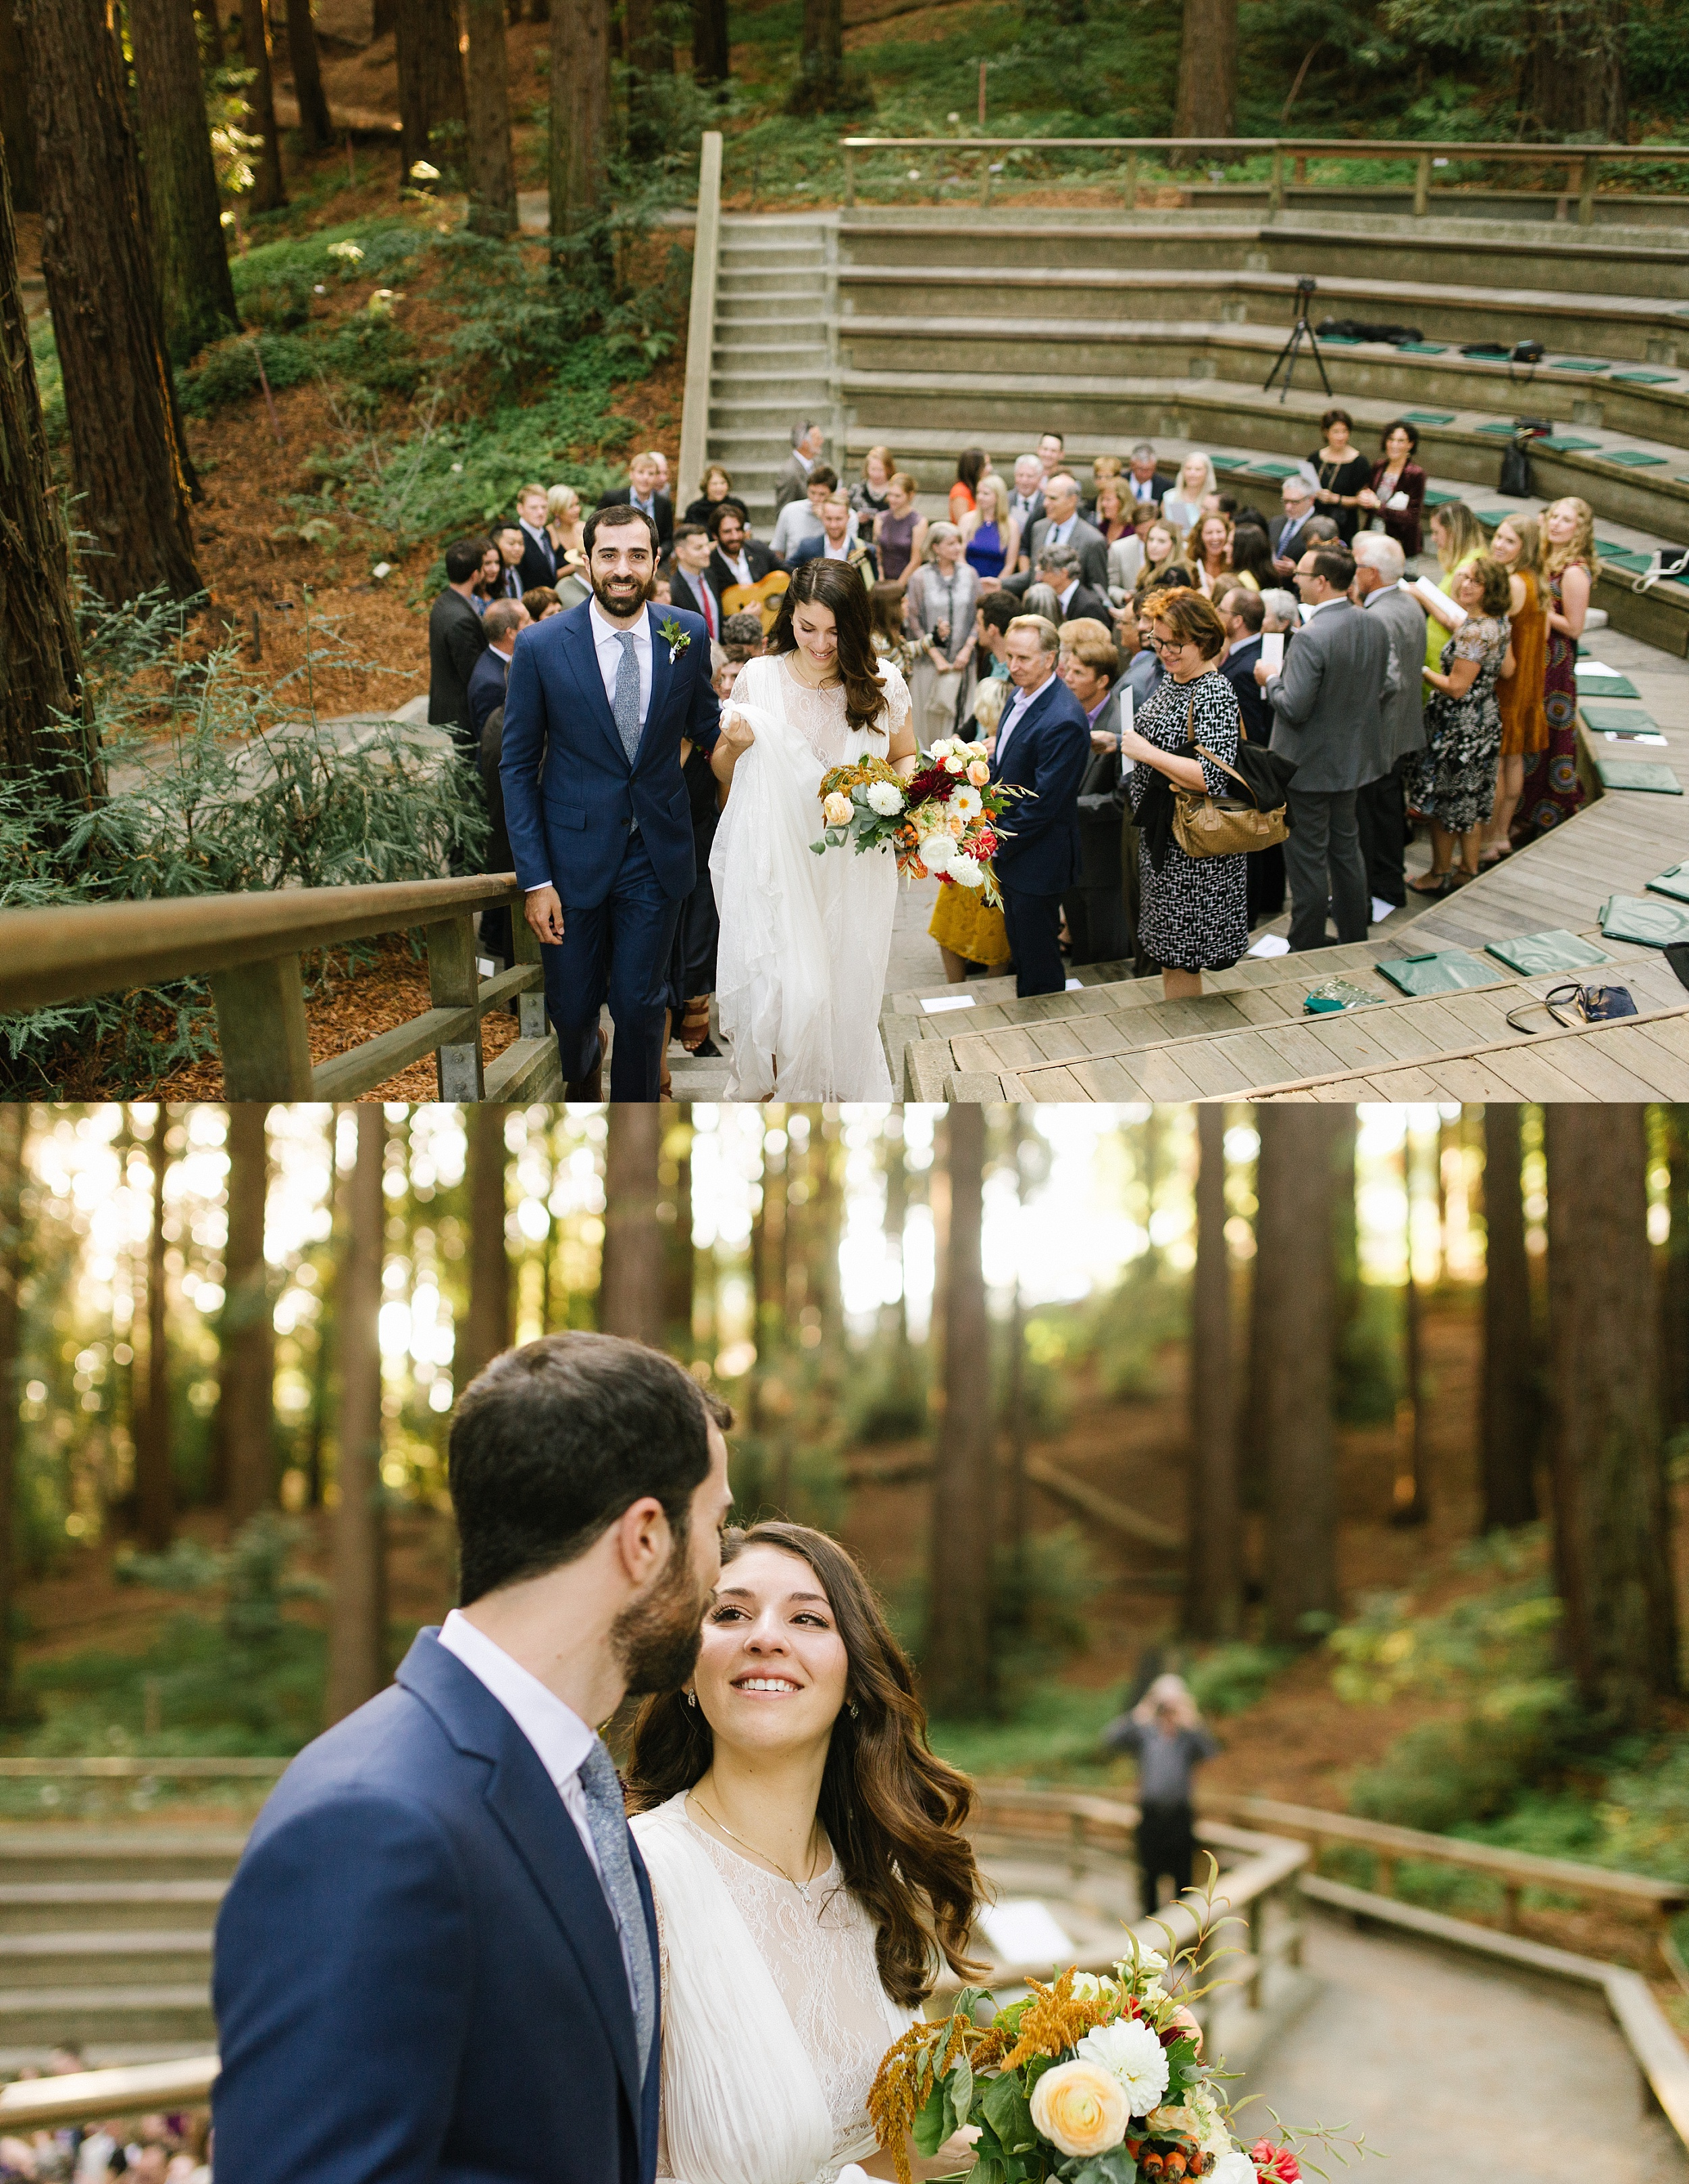 noahhannah_redwoods_botanical_wedding_berkeley_cdp_0031.jpg